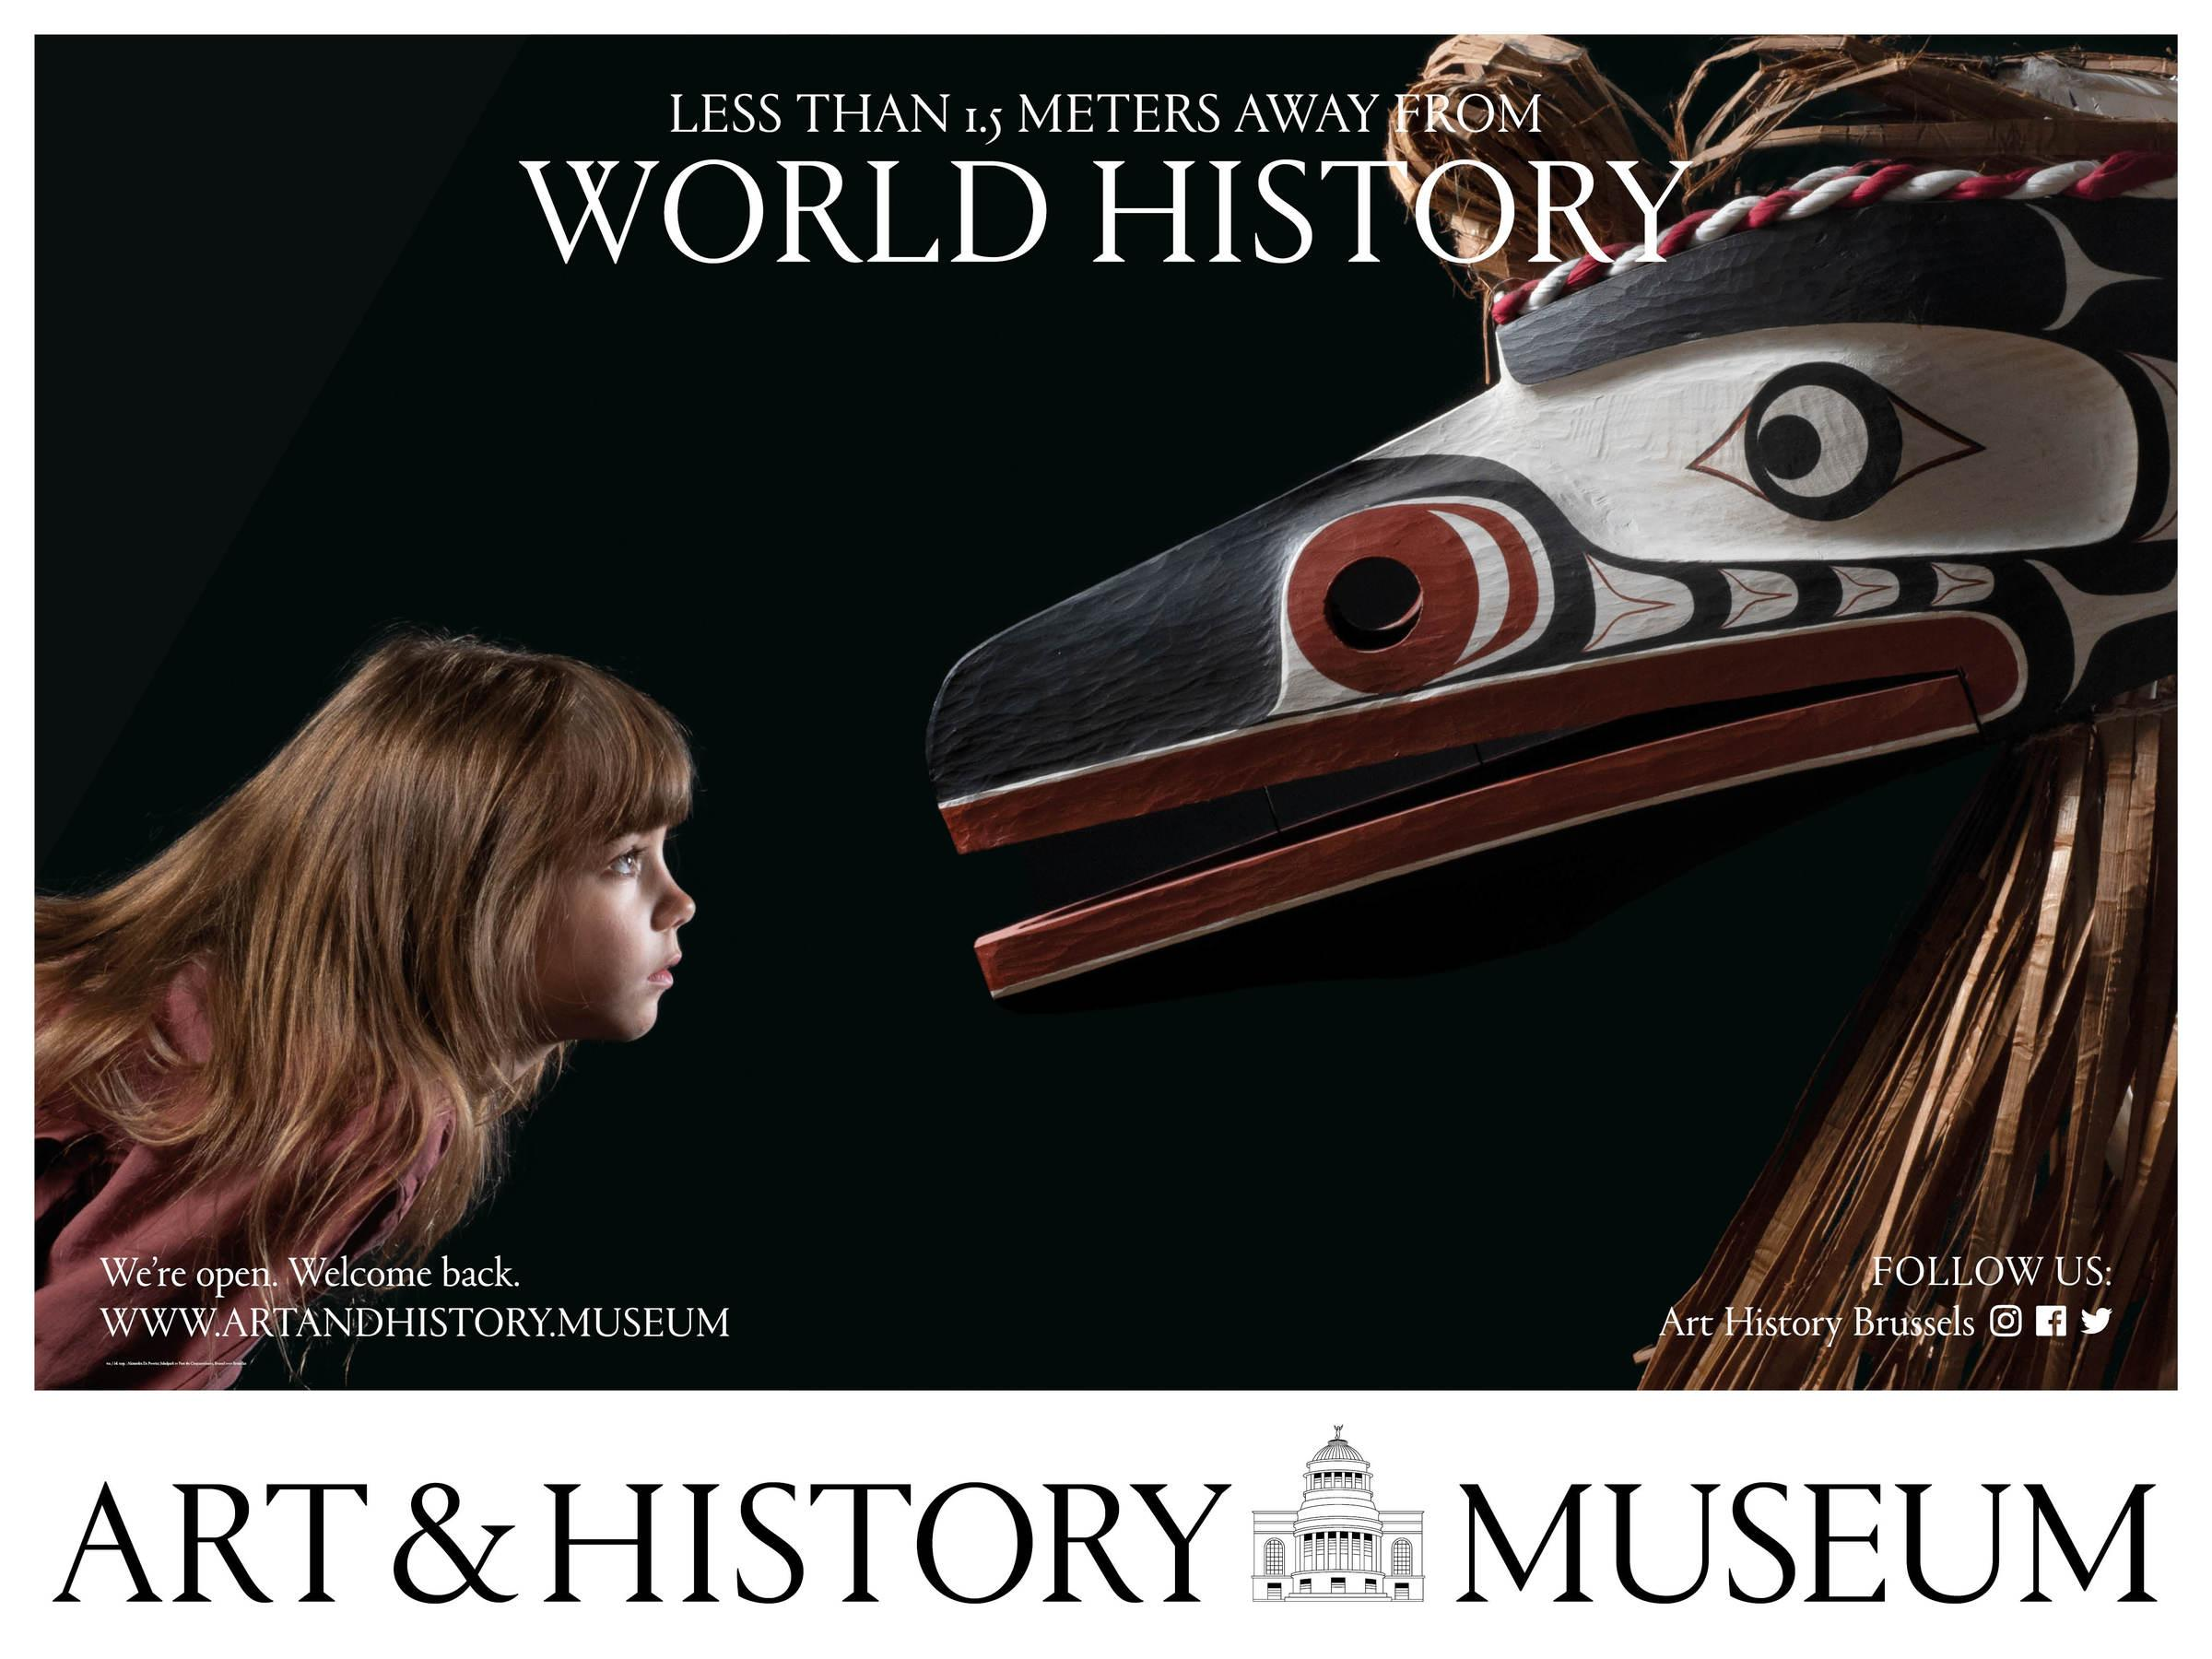 Art & History Museum: Less Than 1.5 Meters Away From World History